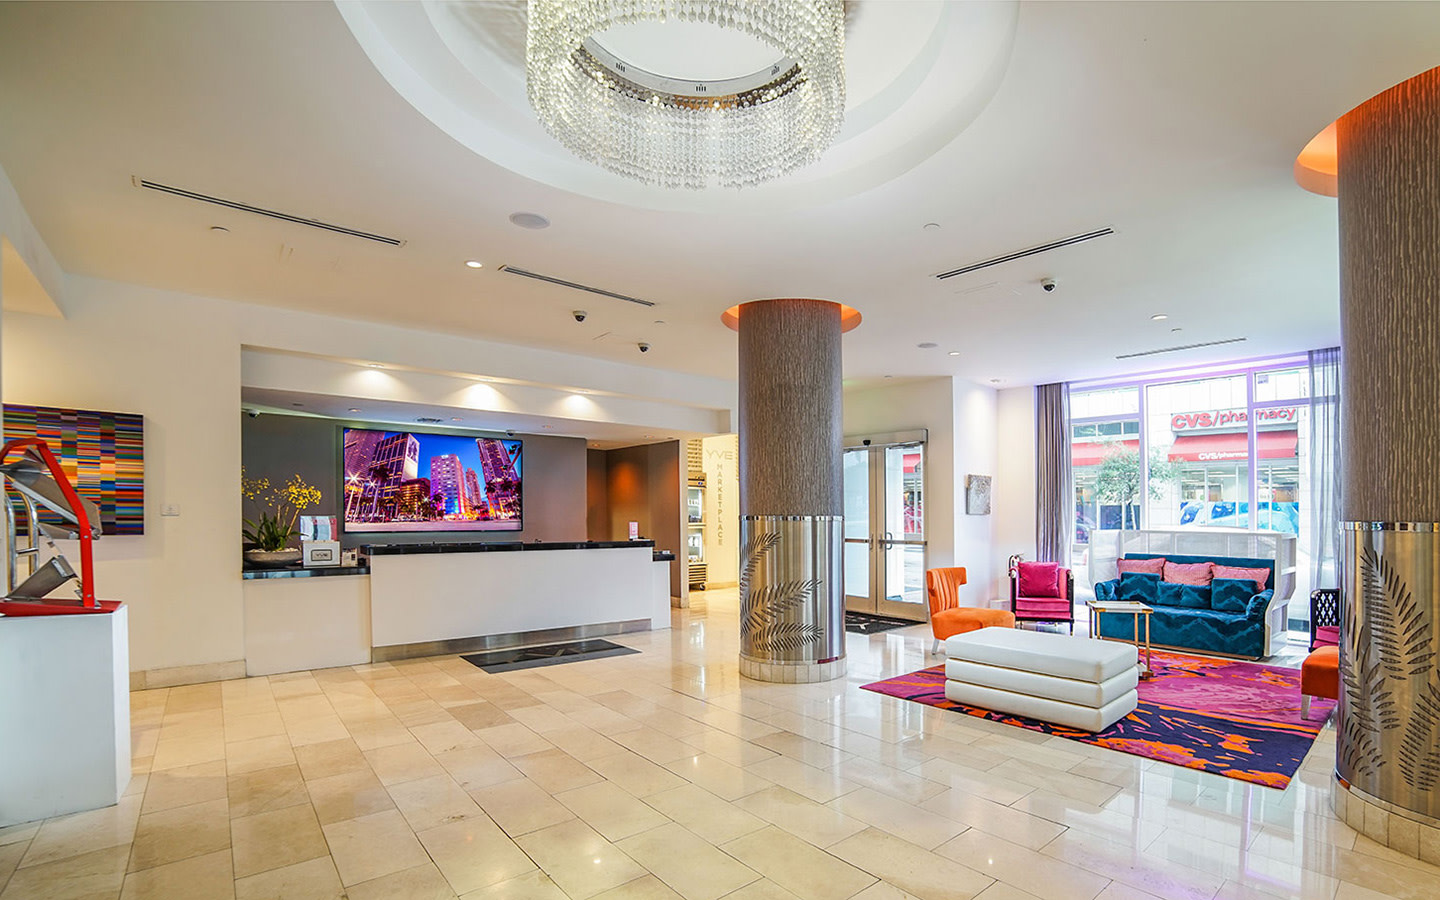 Yve Hotel Lobby and Front desk